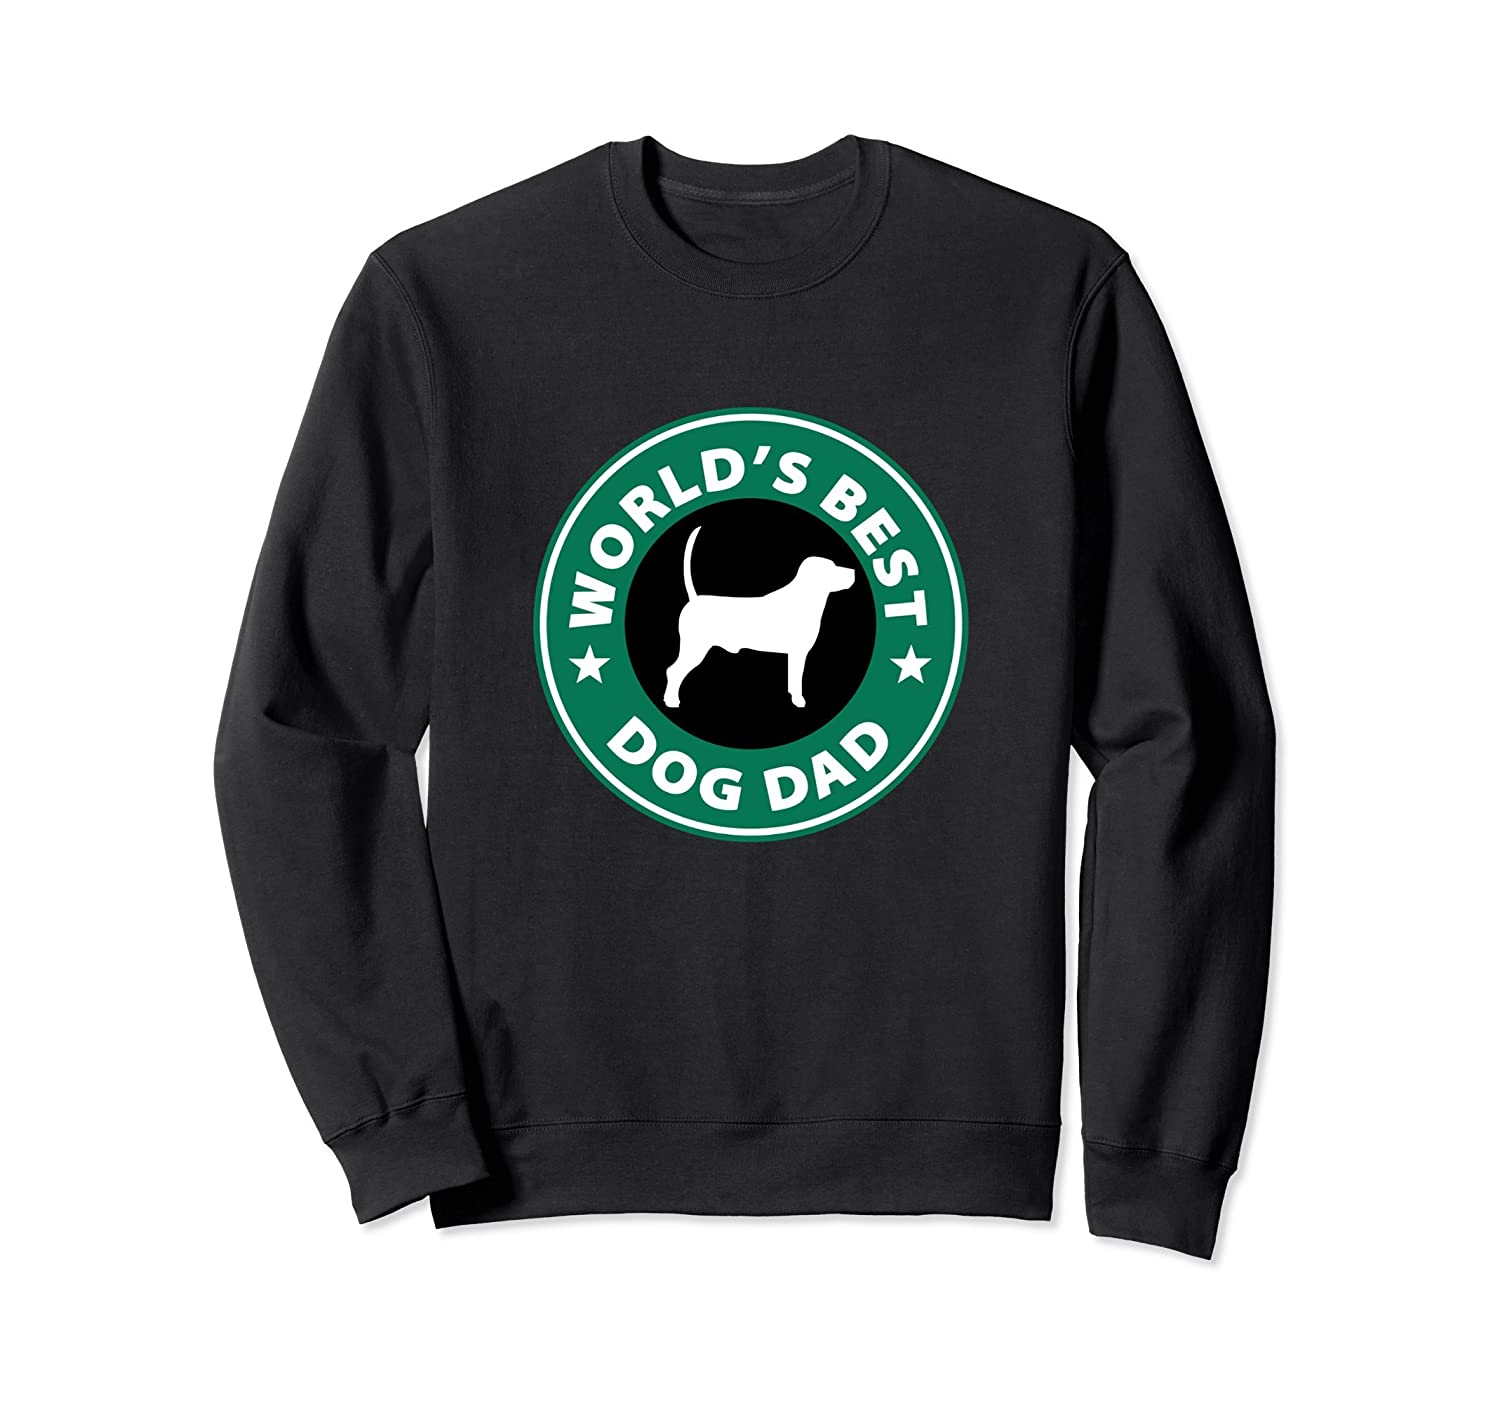 World's Best Dog Dad Cute Pet Love Parody Logo Sweatshirt-TH